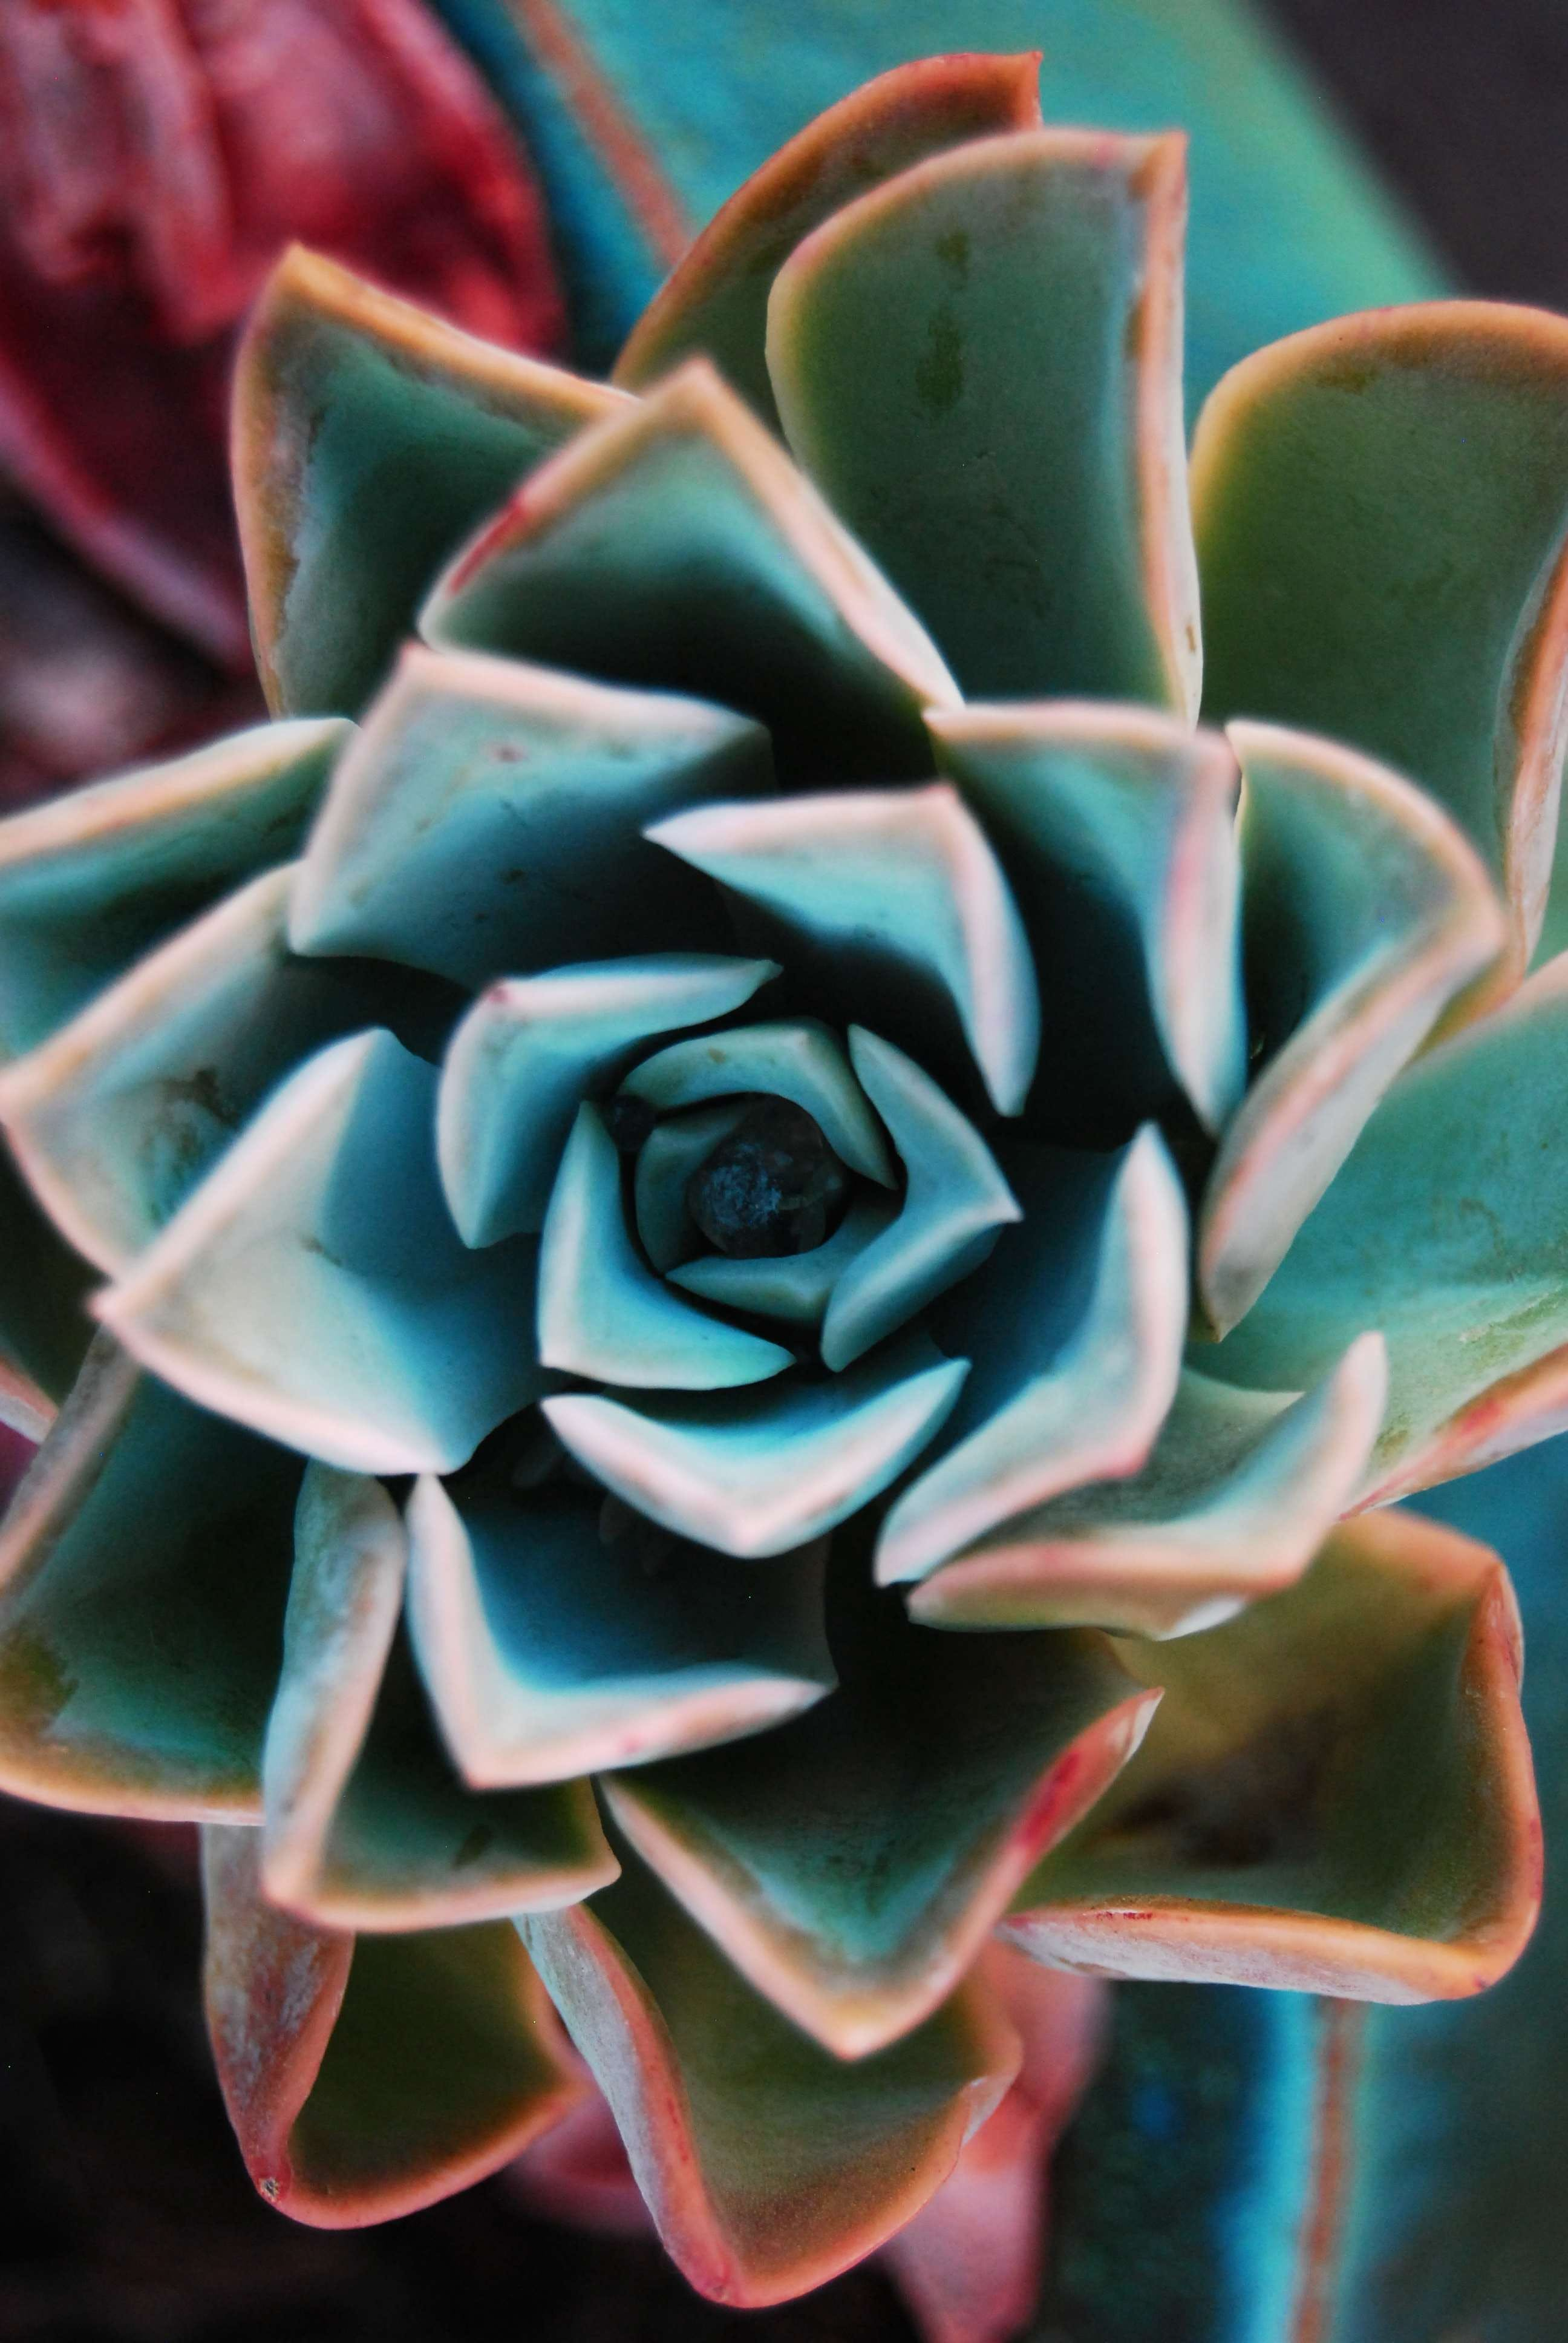 Free stock photo of Echeveria Rock Rose Green Red Turquoise